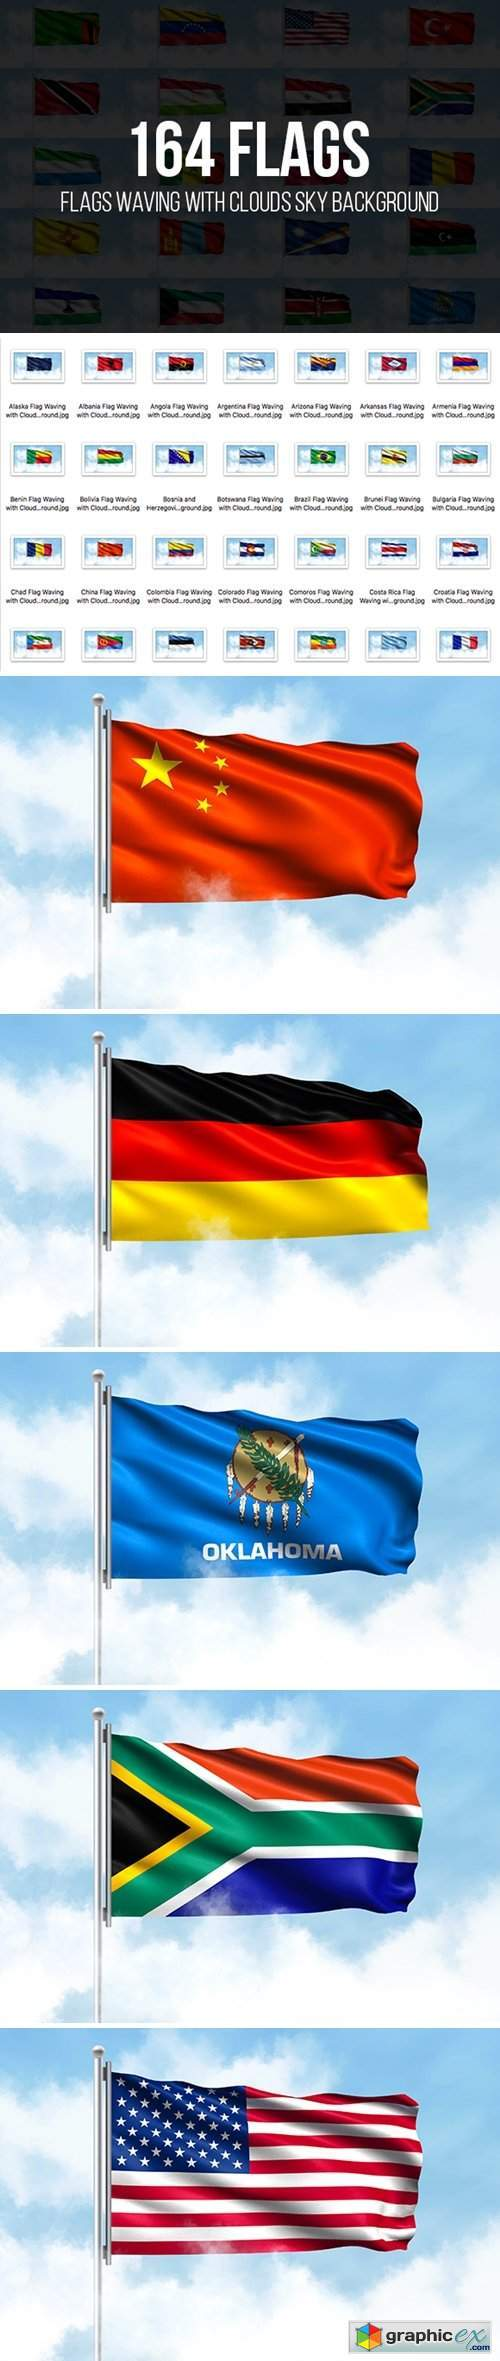 Flags Waving with Clouds Sky Background